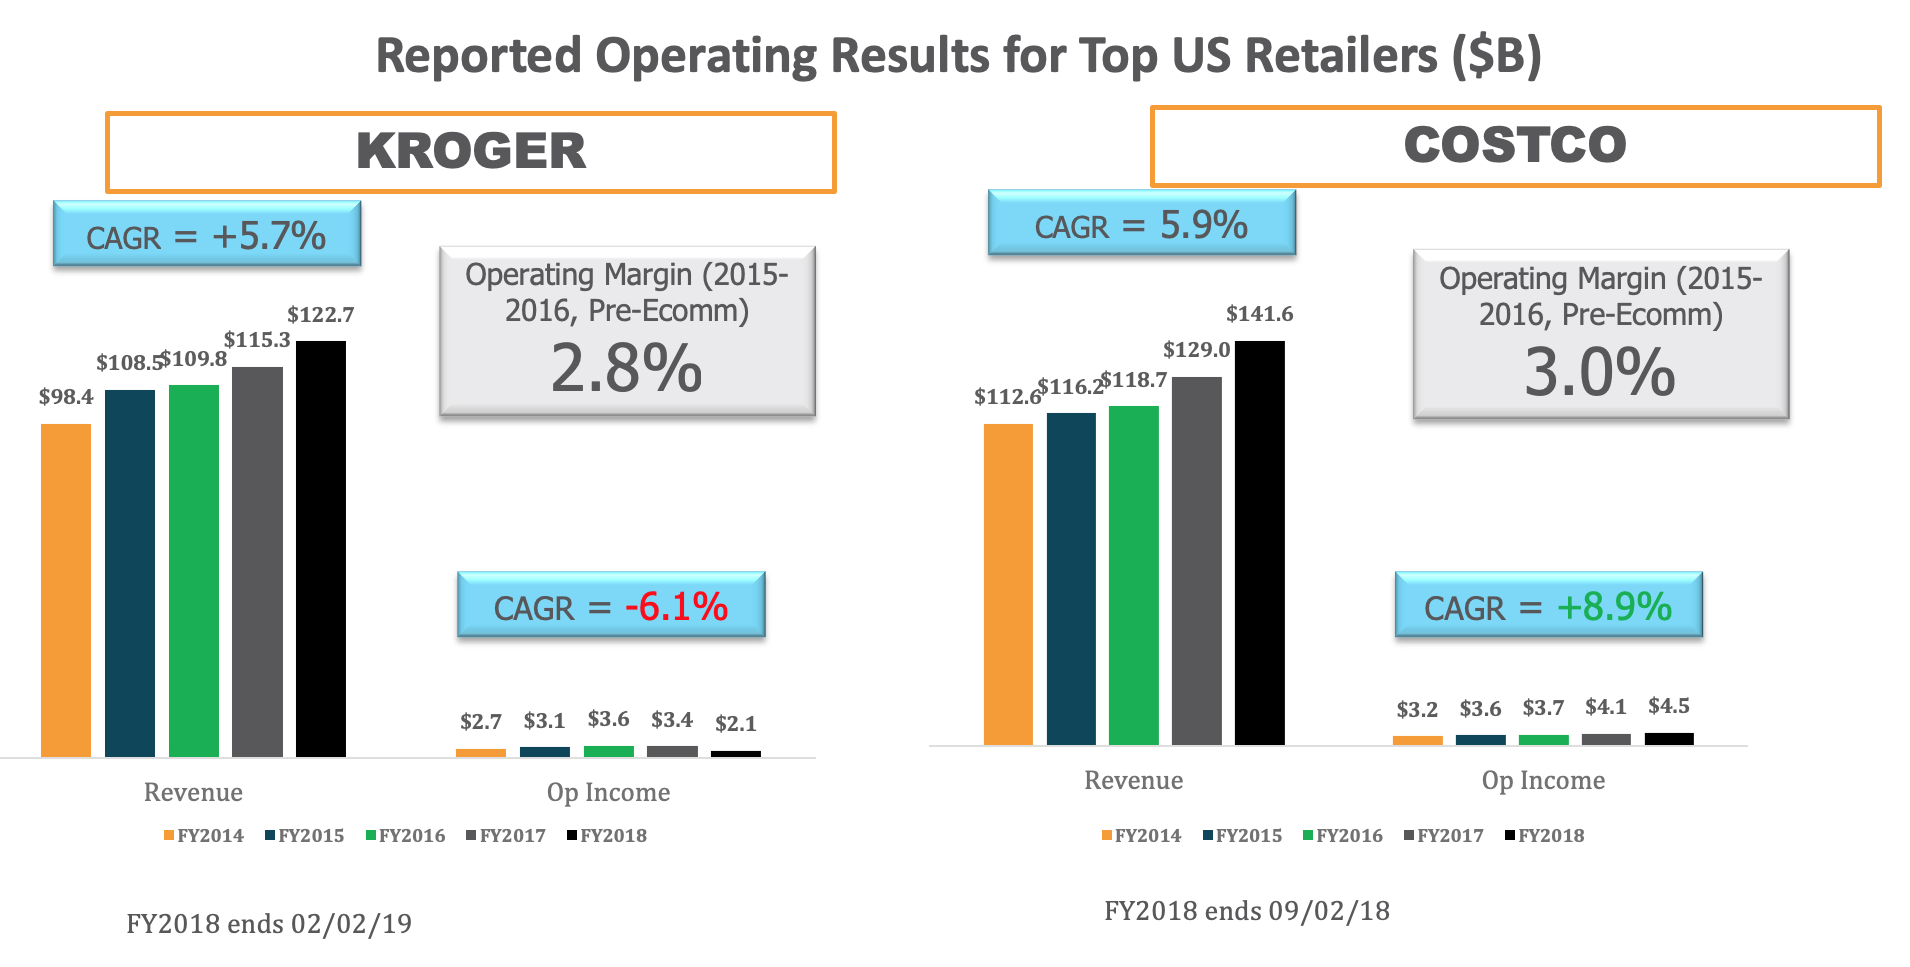 Reported Operating Results For Top U.S. Retailers1 (1)